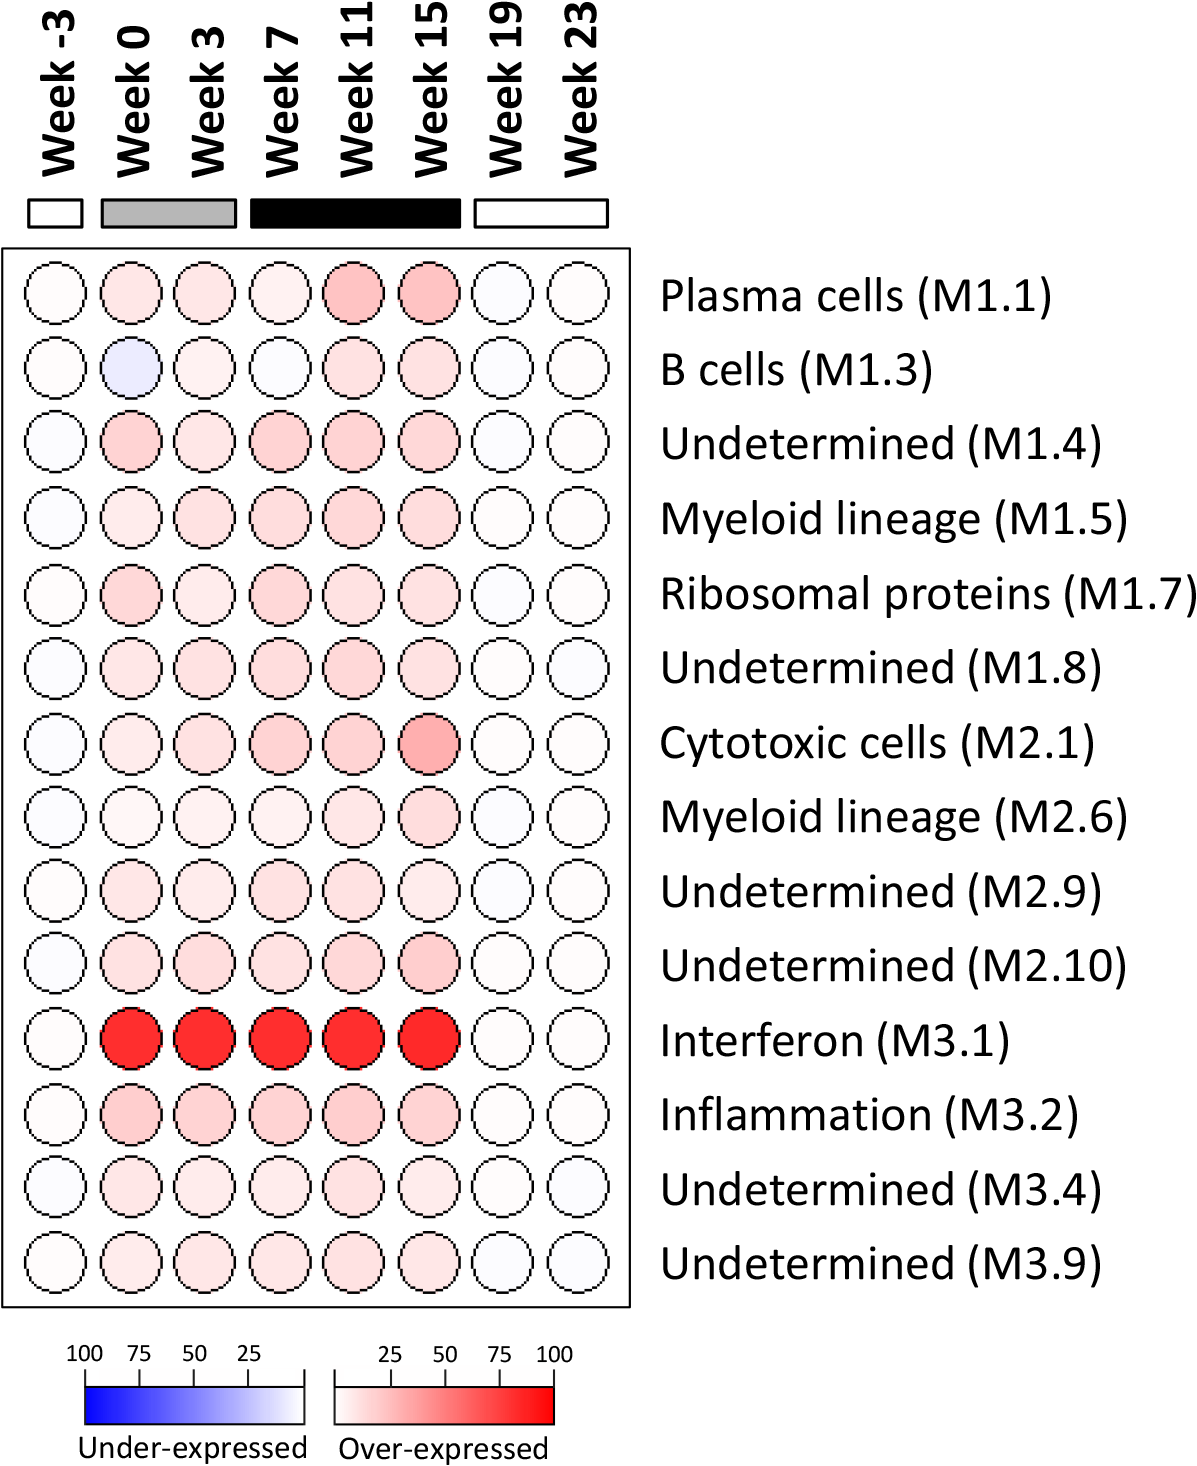 Modular analysis of intrahepatic transcriptional signatures in the wIFN-α treatment group.